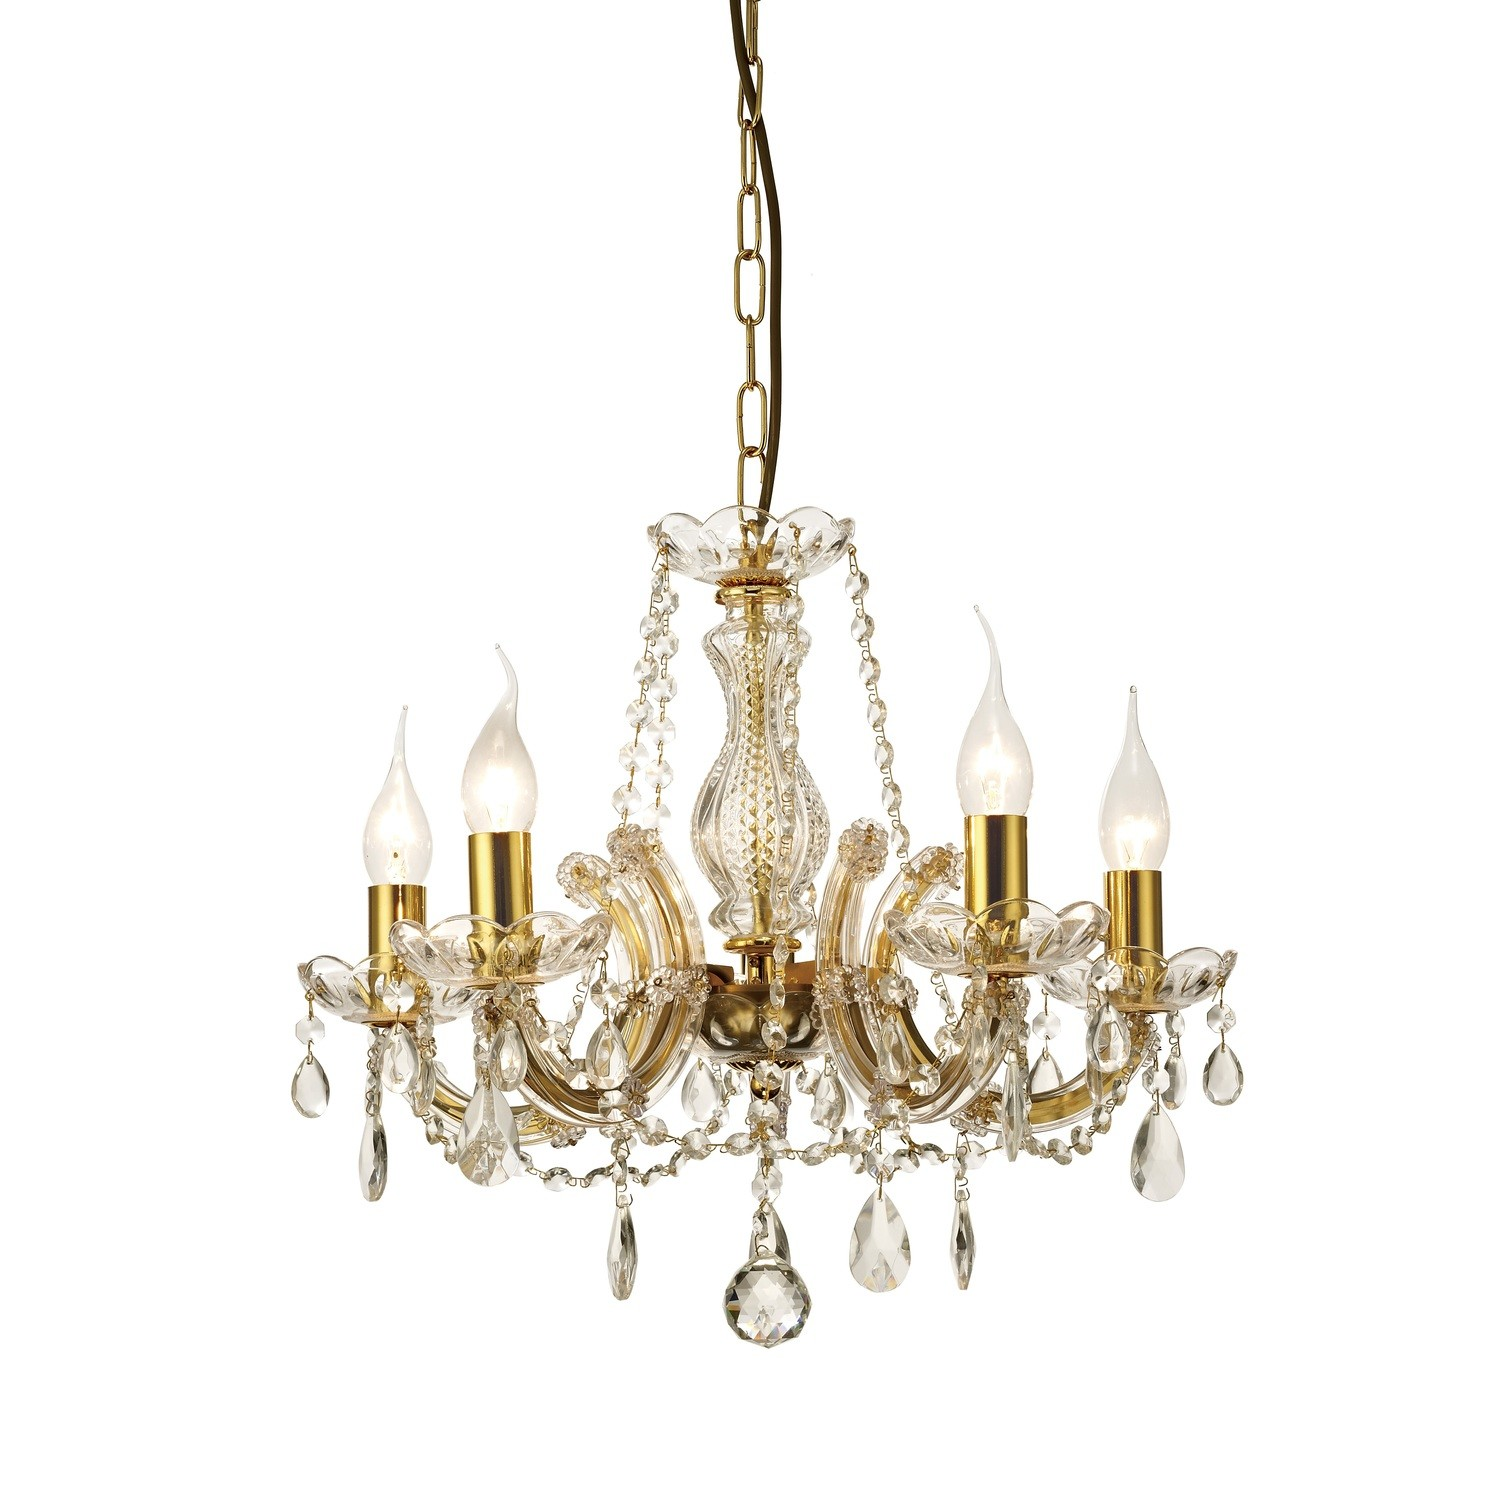 Gabrielle Chandelier With Glass Sconce & Glass Crystal Droplets 5 Light E14 Polished Brass Finish